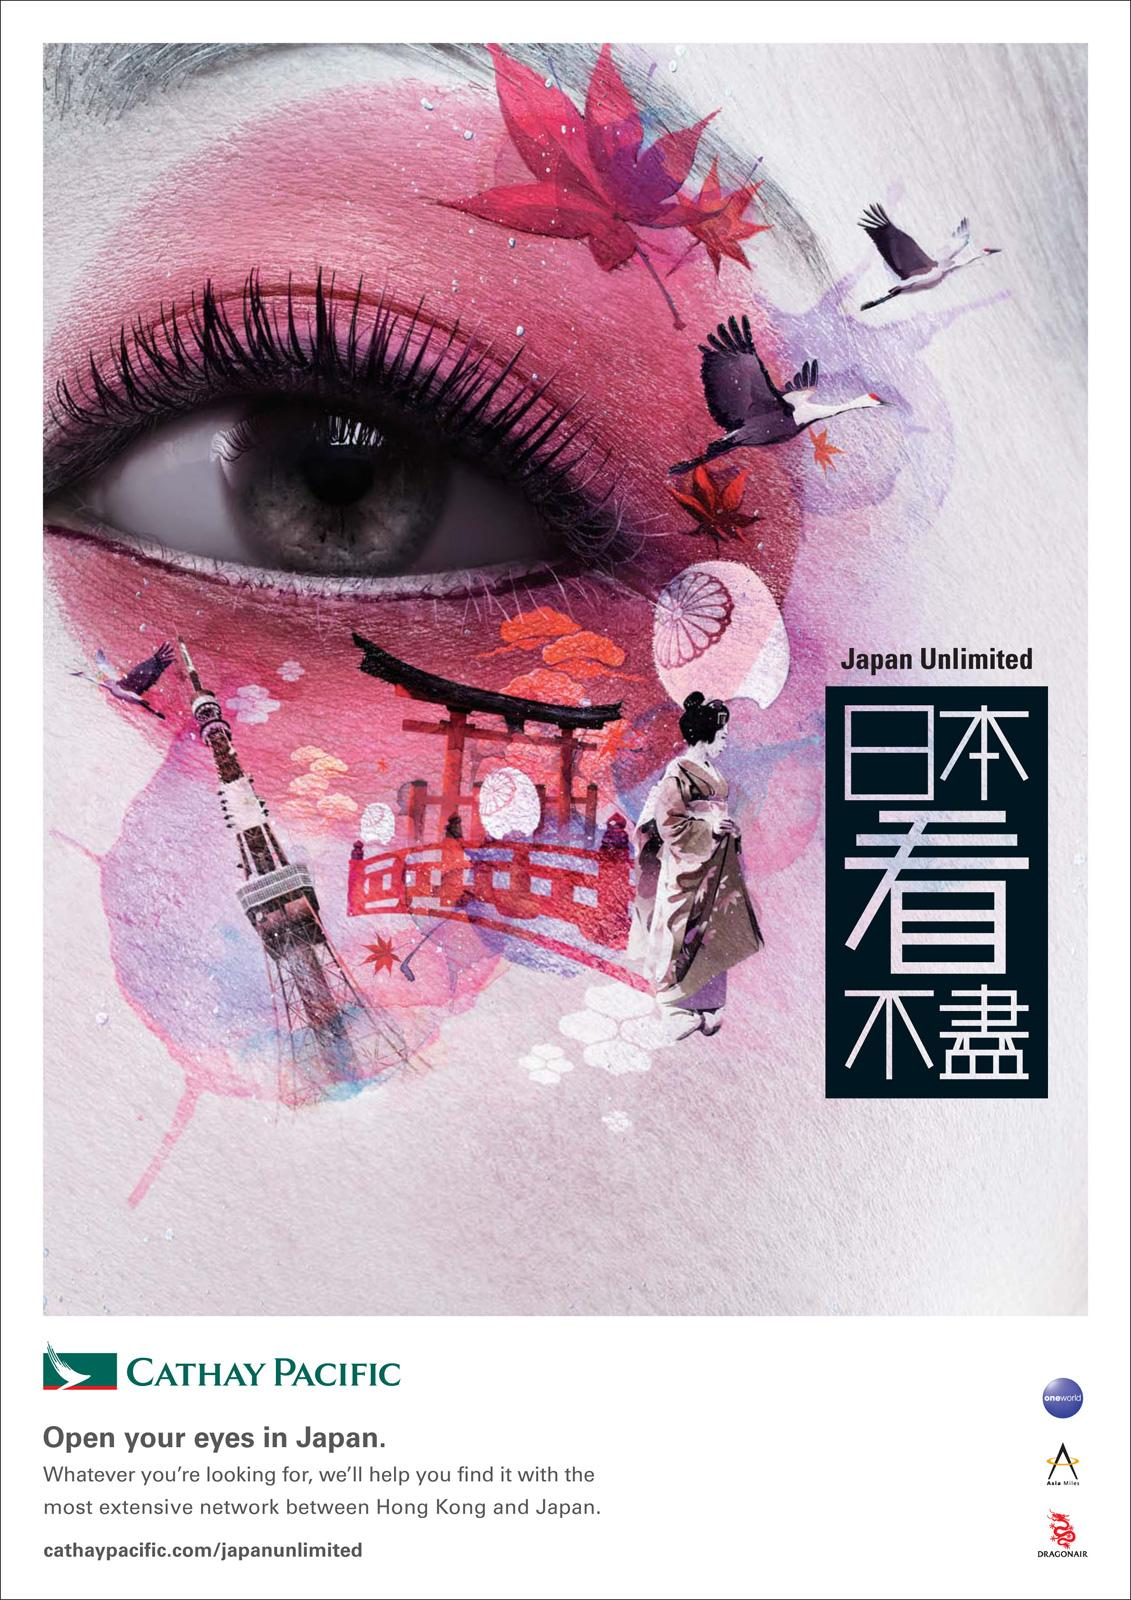 Cathay Pacific Print Ad -  Japan Unlimited, Sight